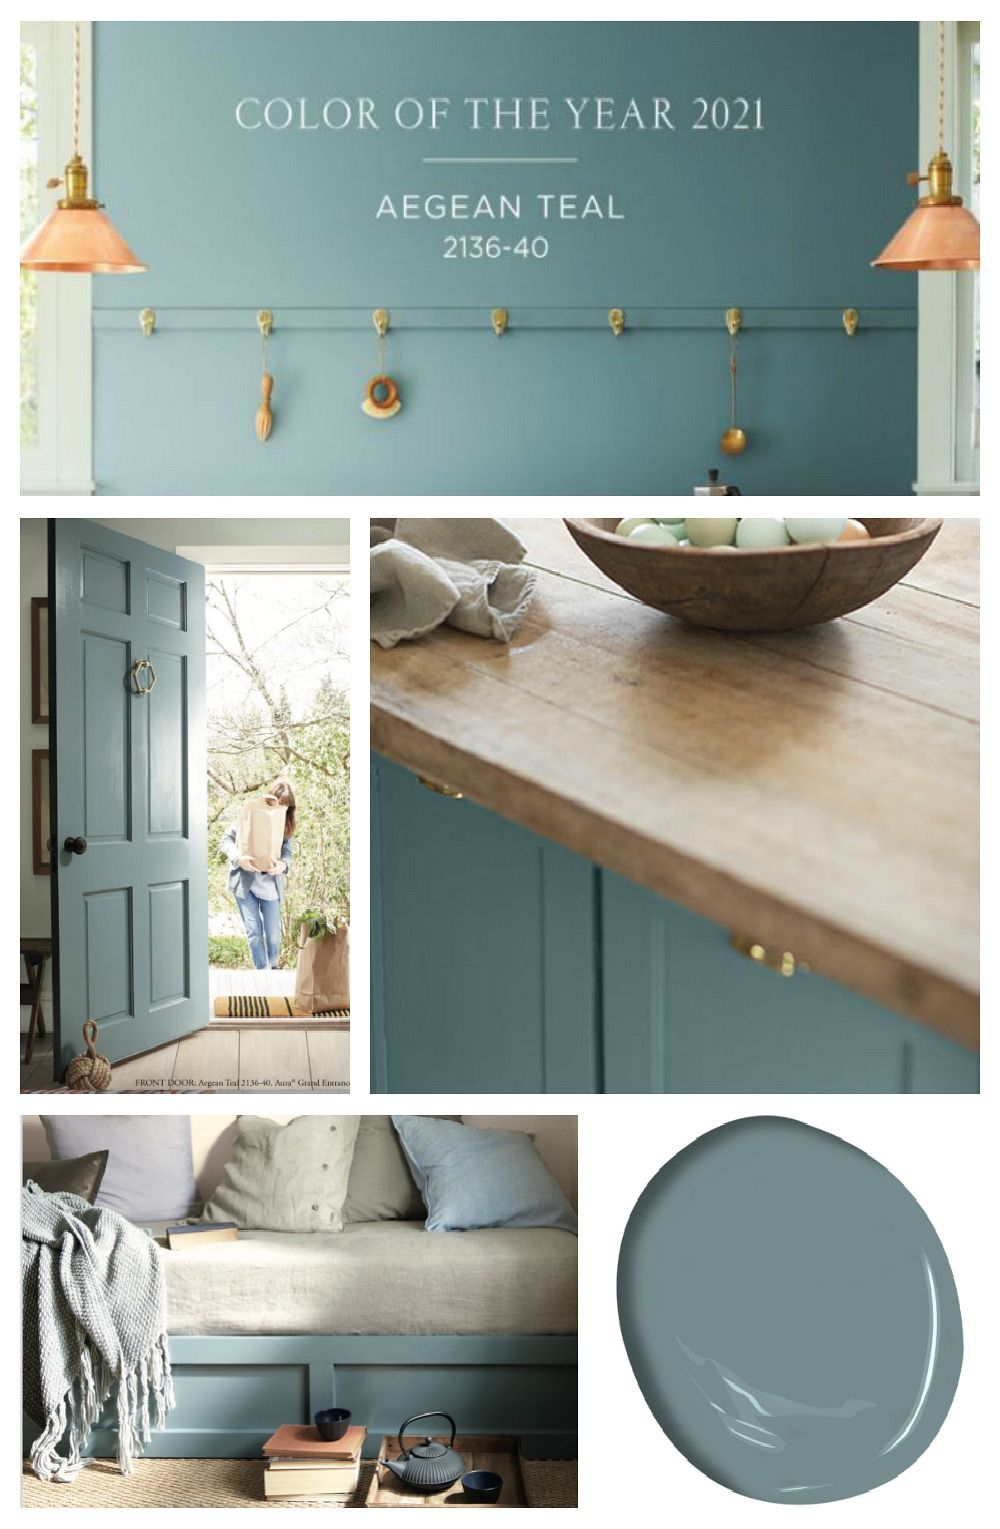 2021 Colors Of The Year In 2020 Paint Colors For Home House Colors Home Decor